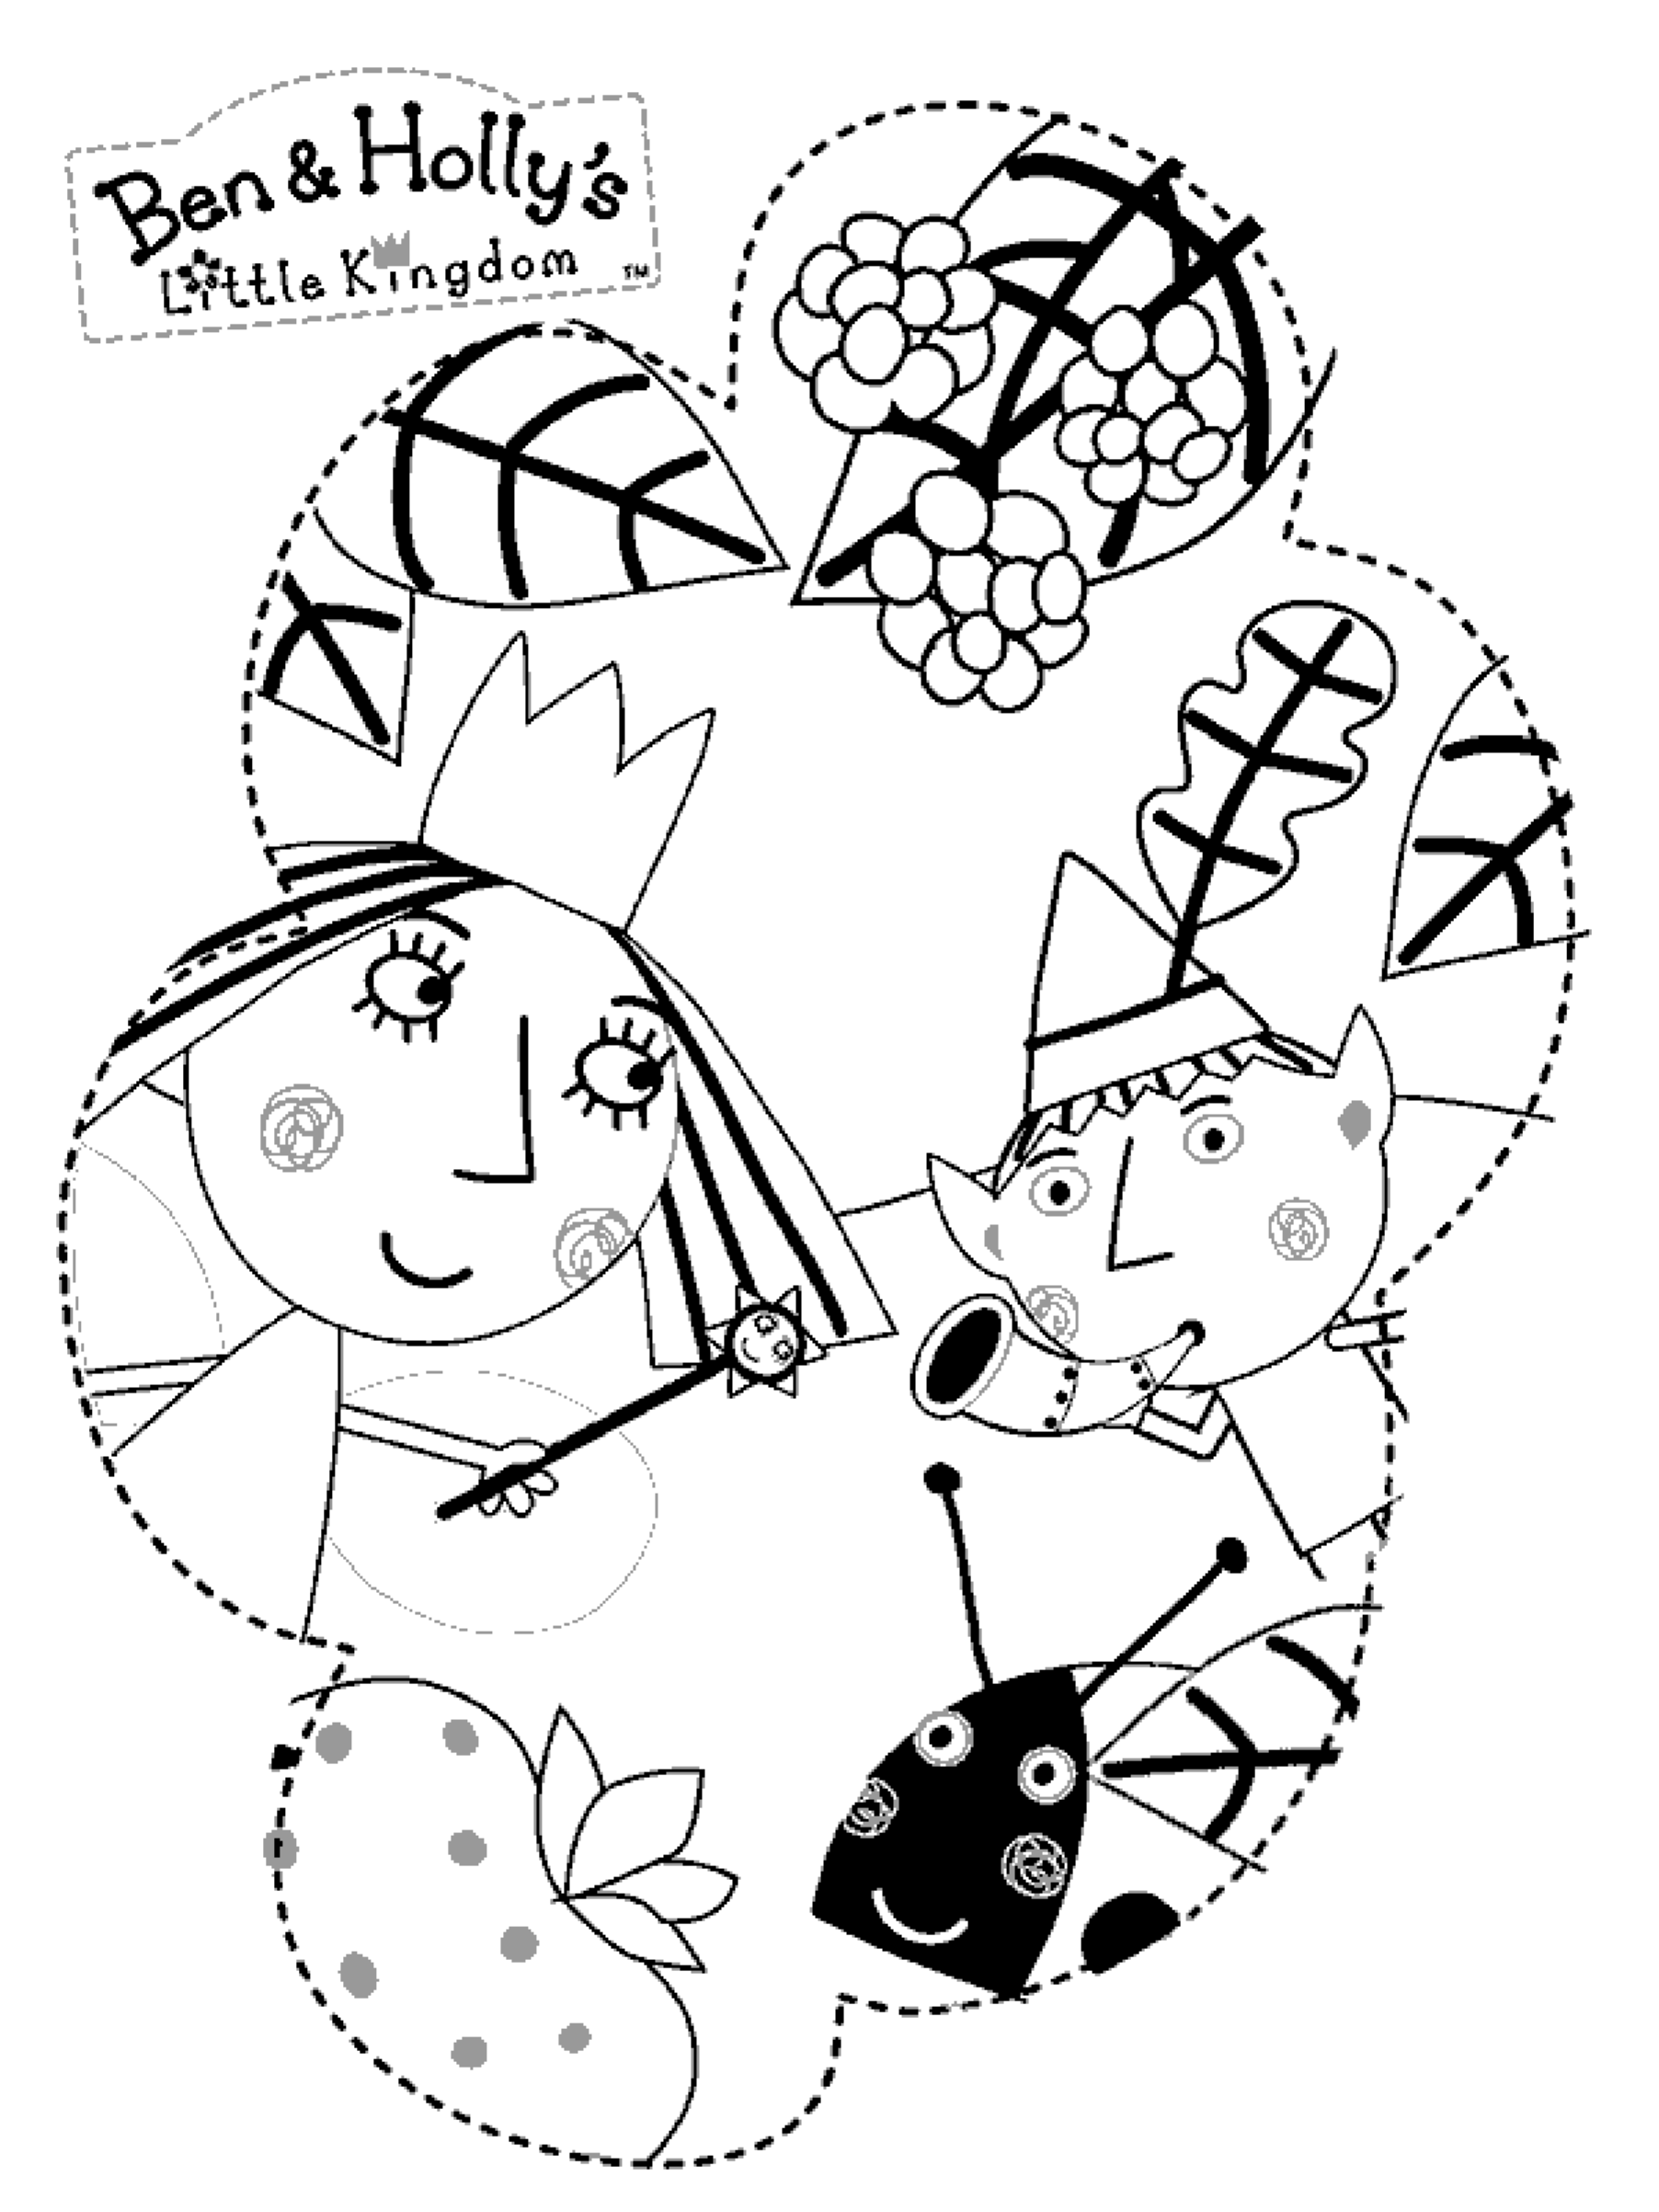 Ben And Holly Printable Coloring Pages Free Printable Ben And